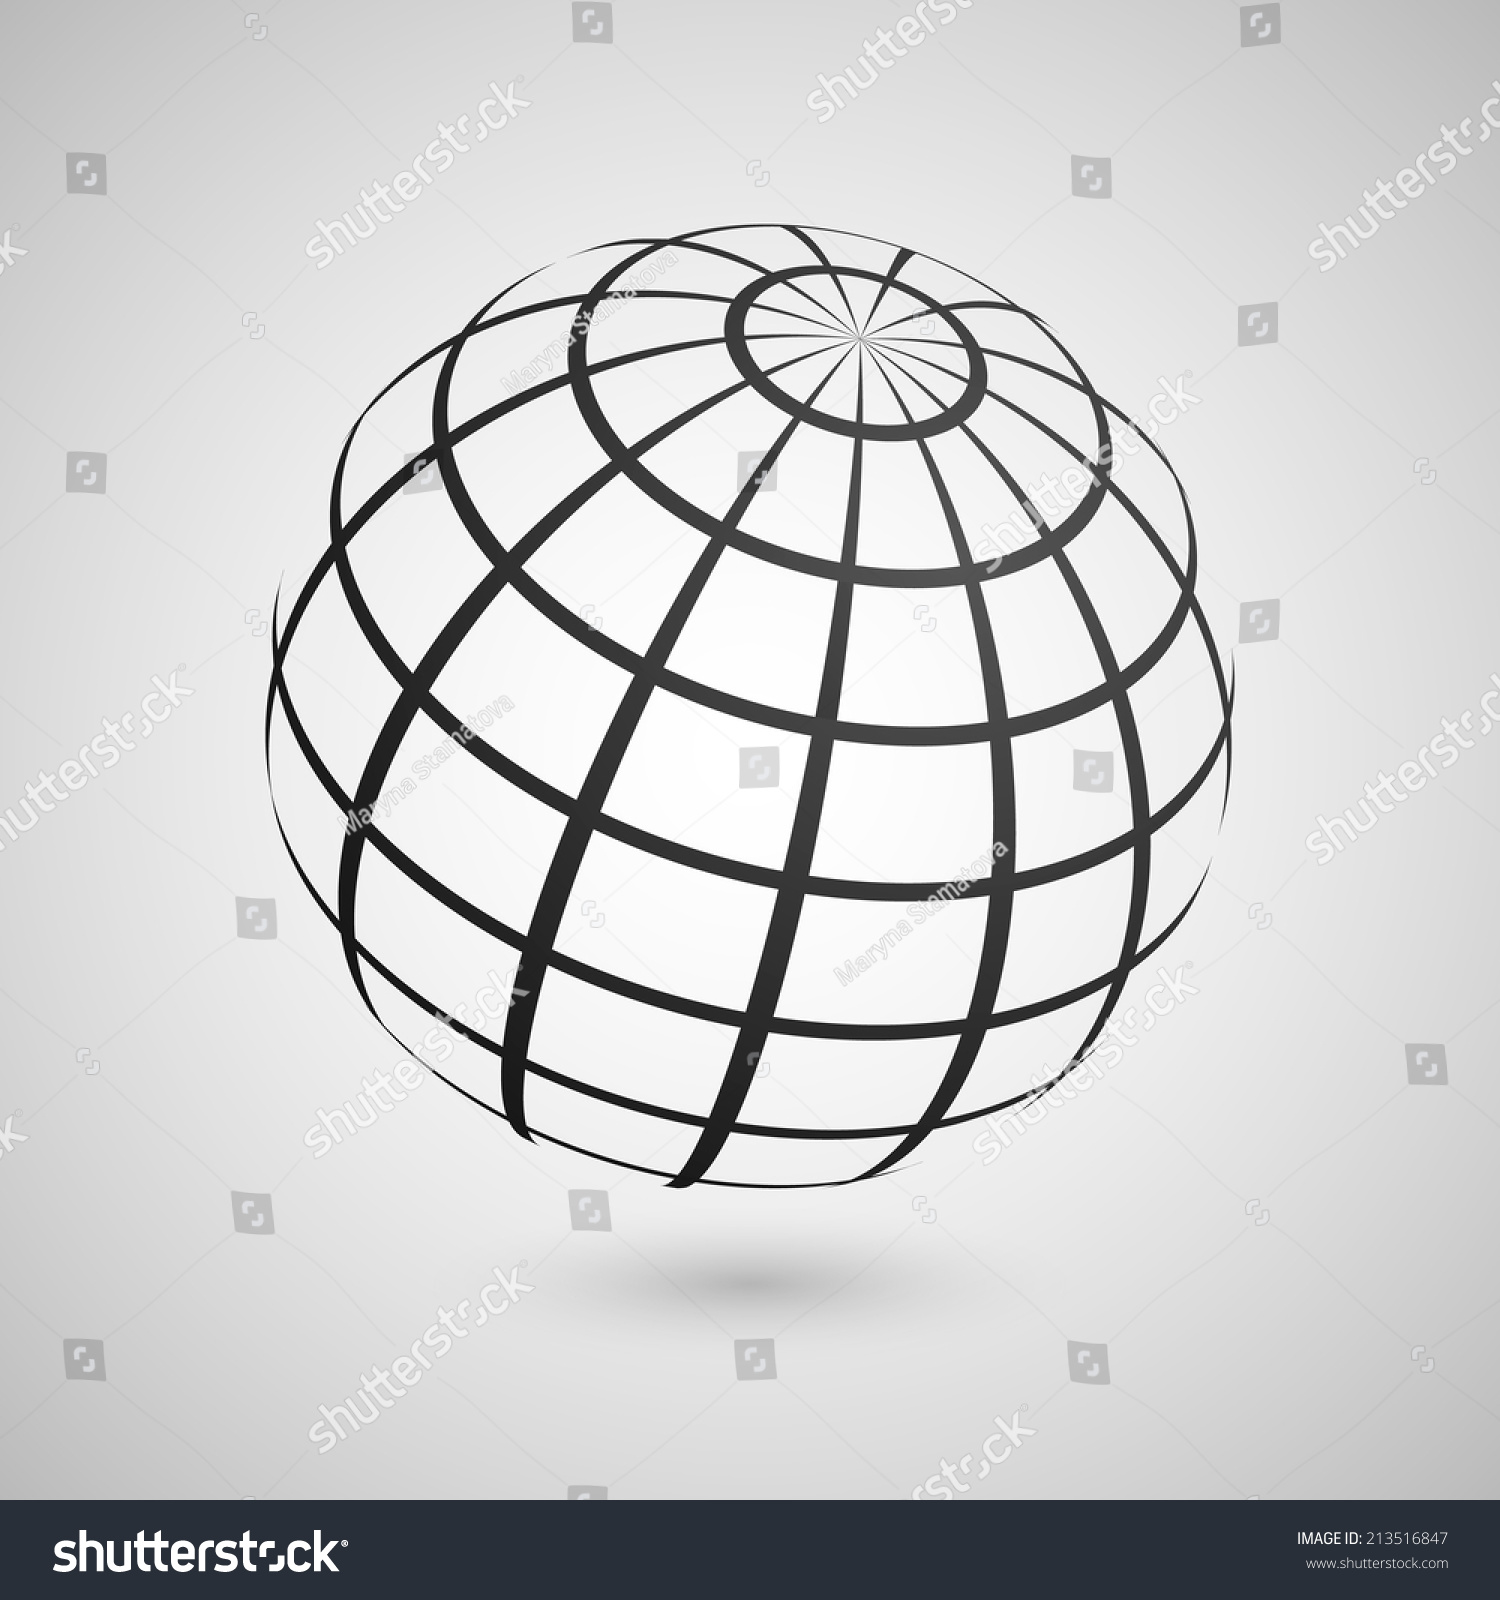 Illustration Wire Frame Planet Sphere Isolated Stock Vector (Royalty ...